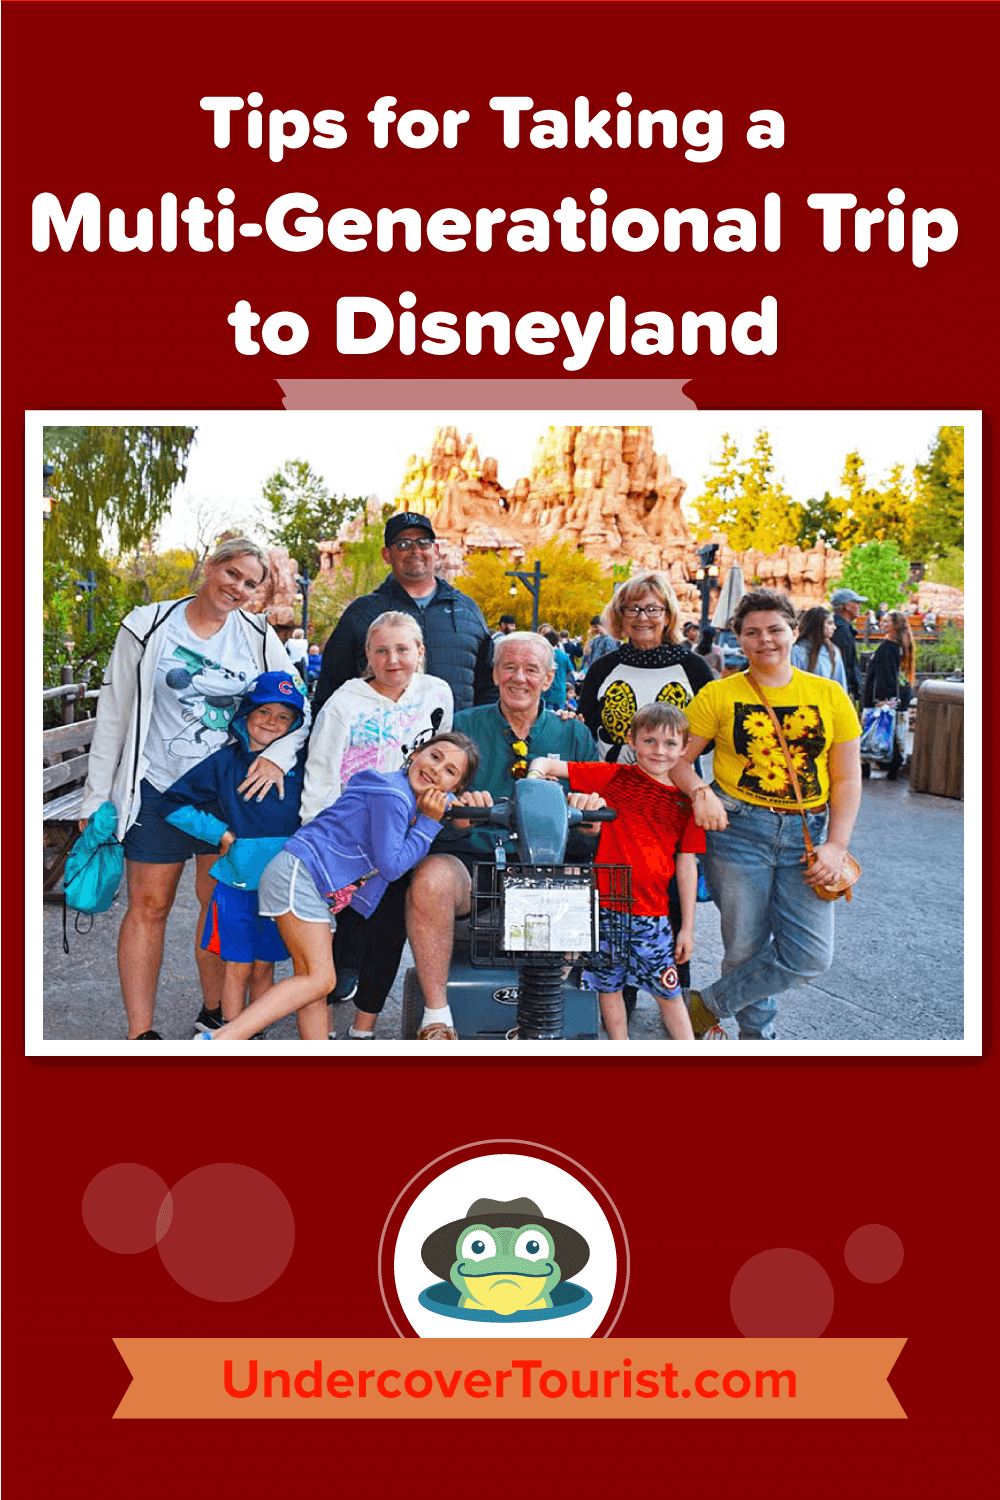 Tips for Taking a Multi-Generational Trip to Disneyland - Pinterest